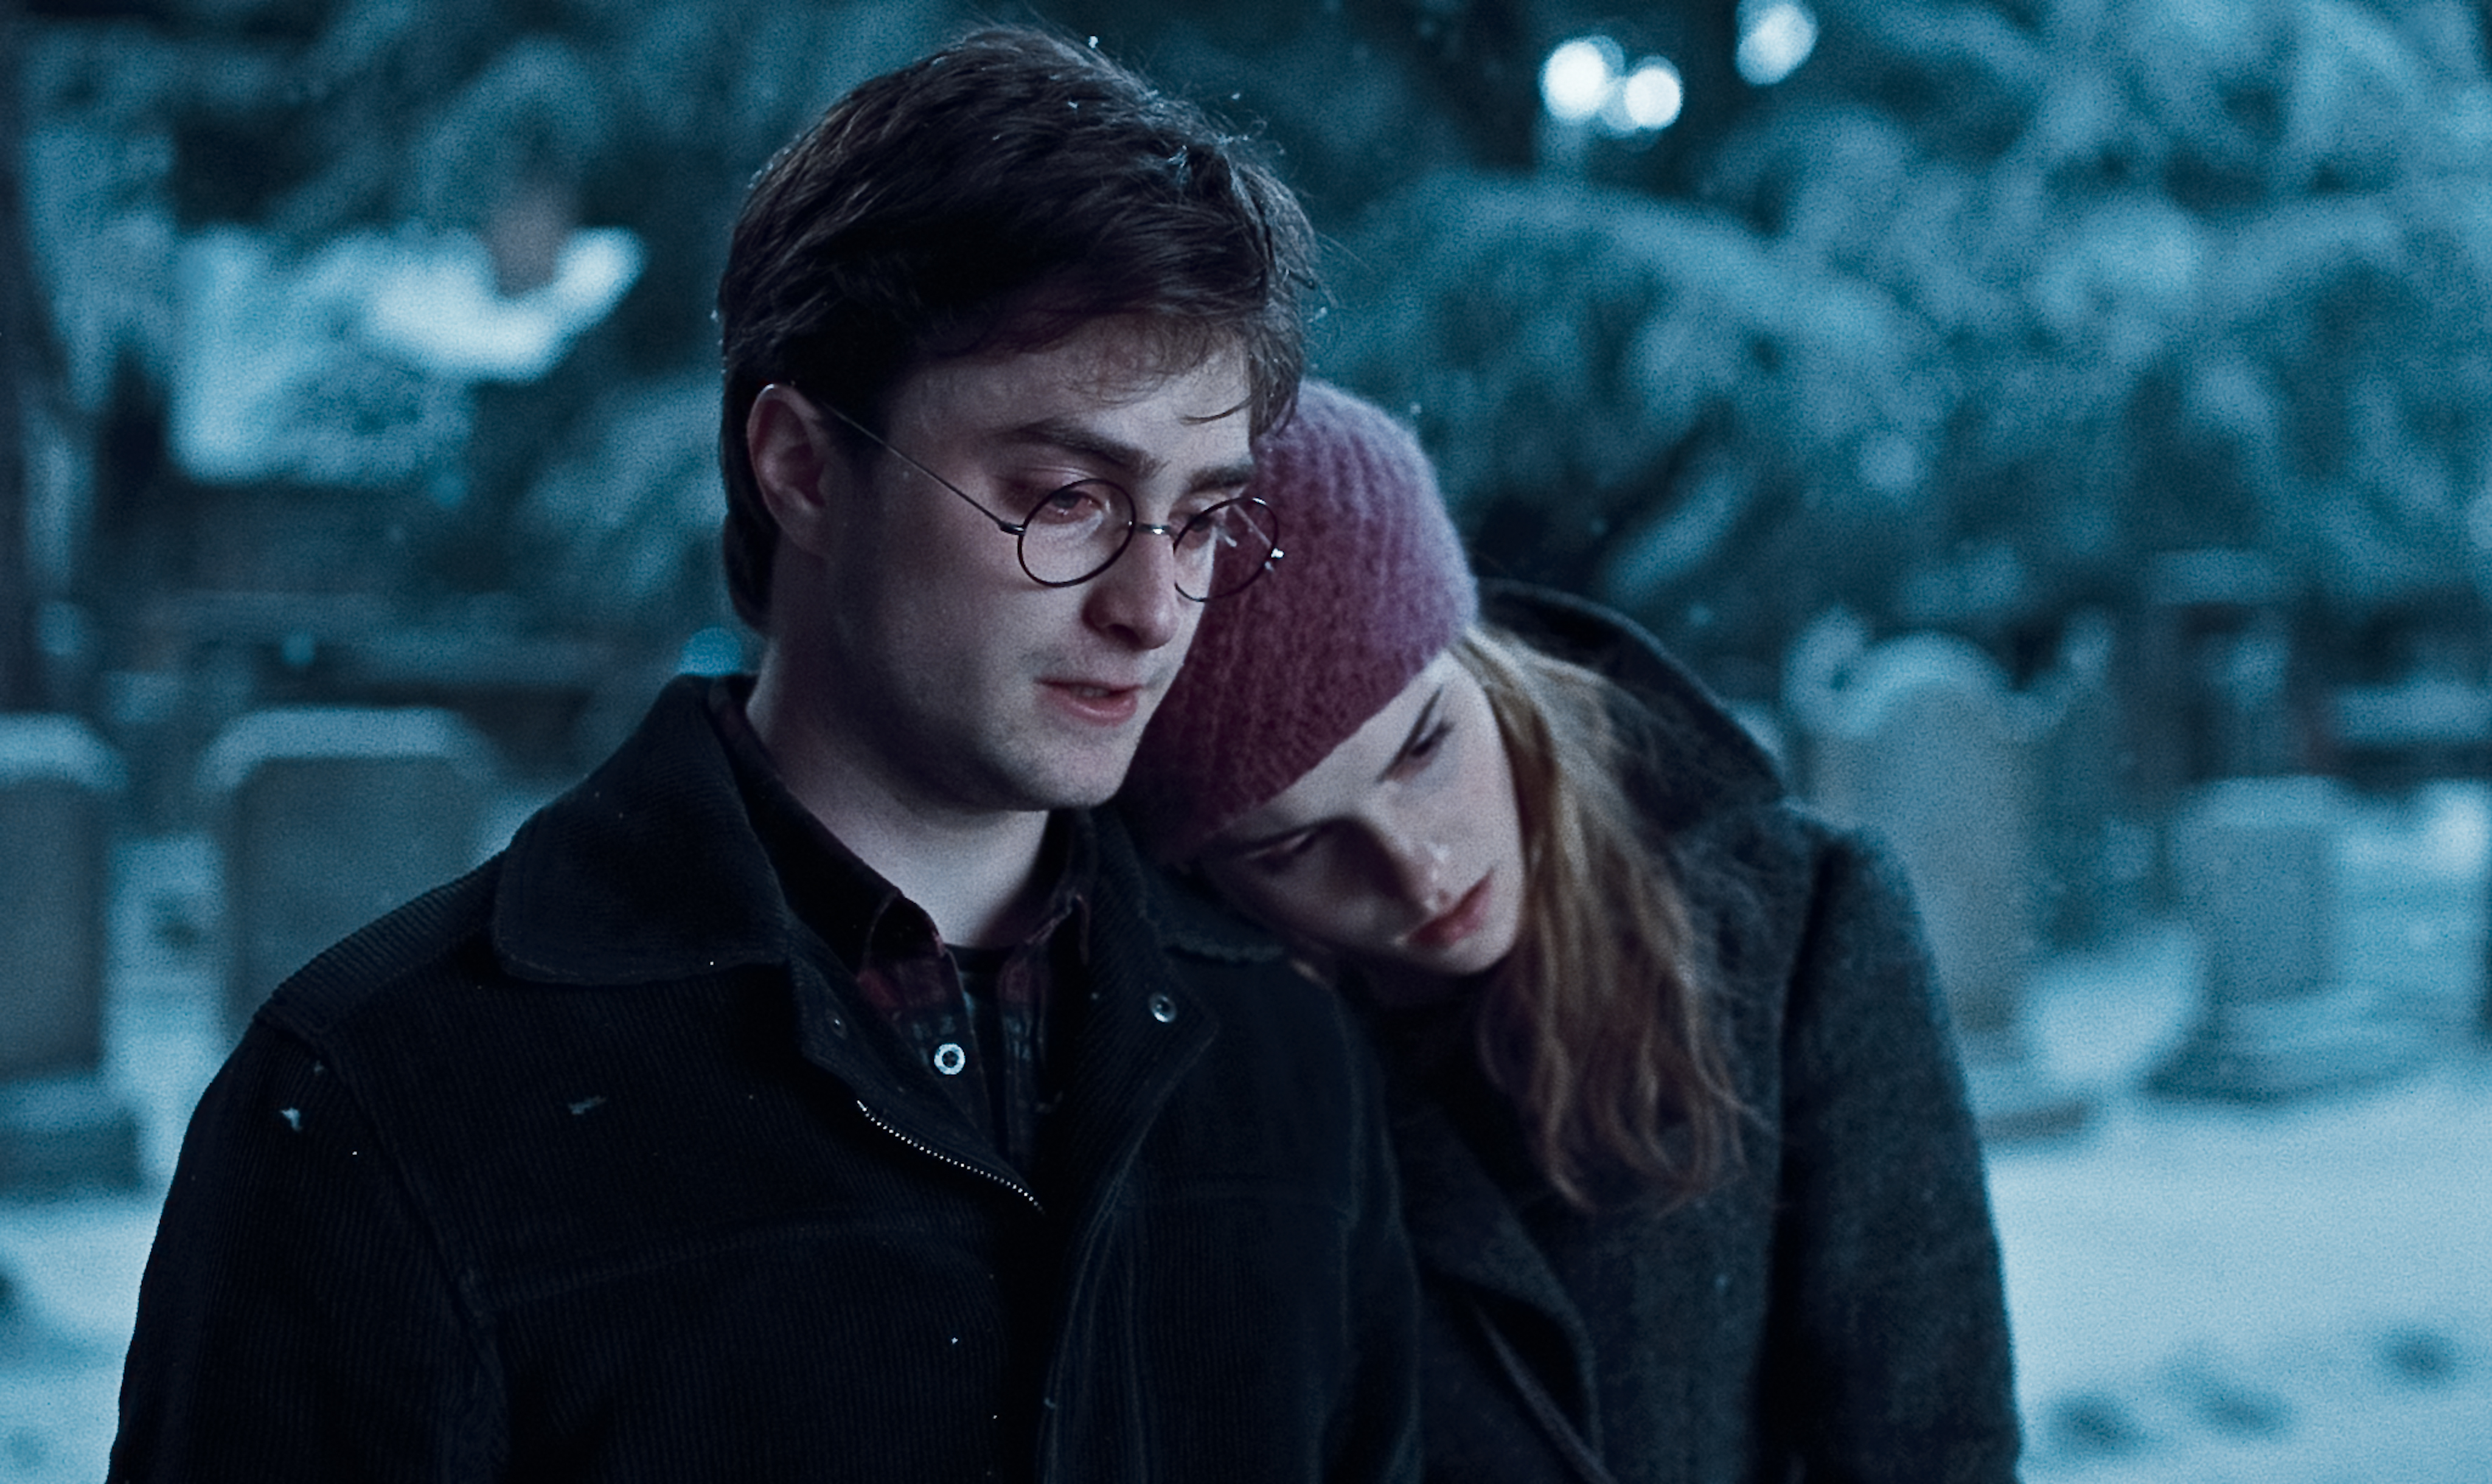 Harry Potter's Impact on Millennials in a Post-9/11 World